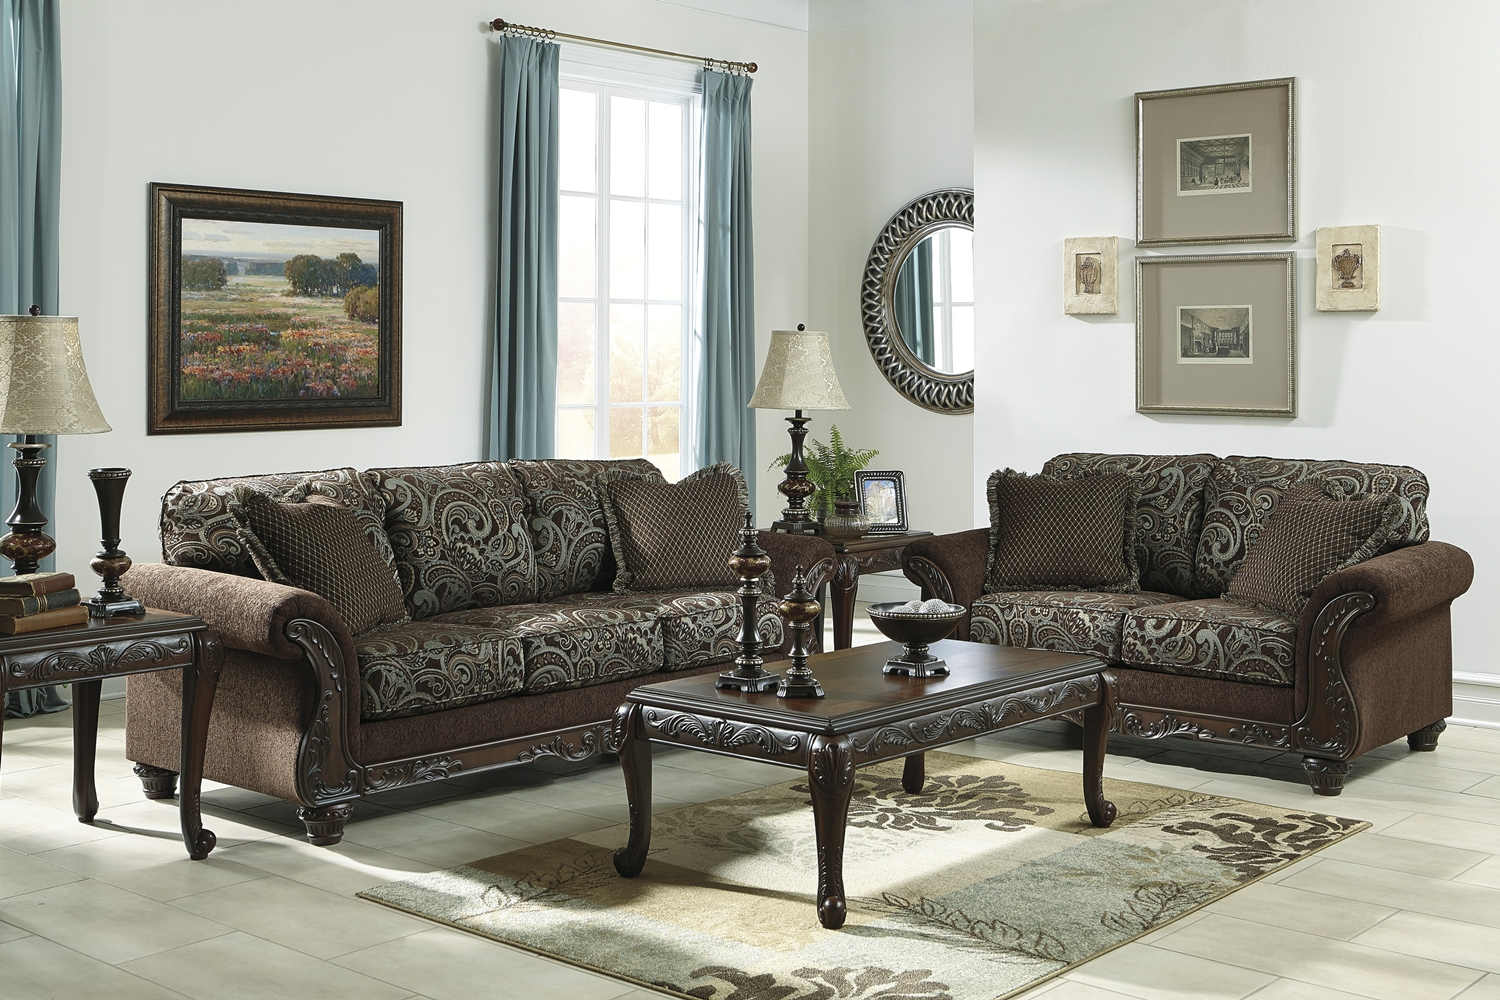 Living room sets traditional - Living room furniture traditional ...